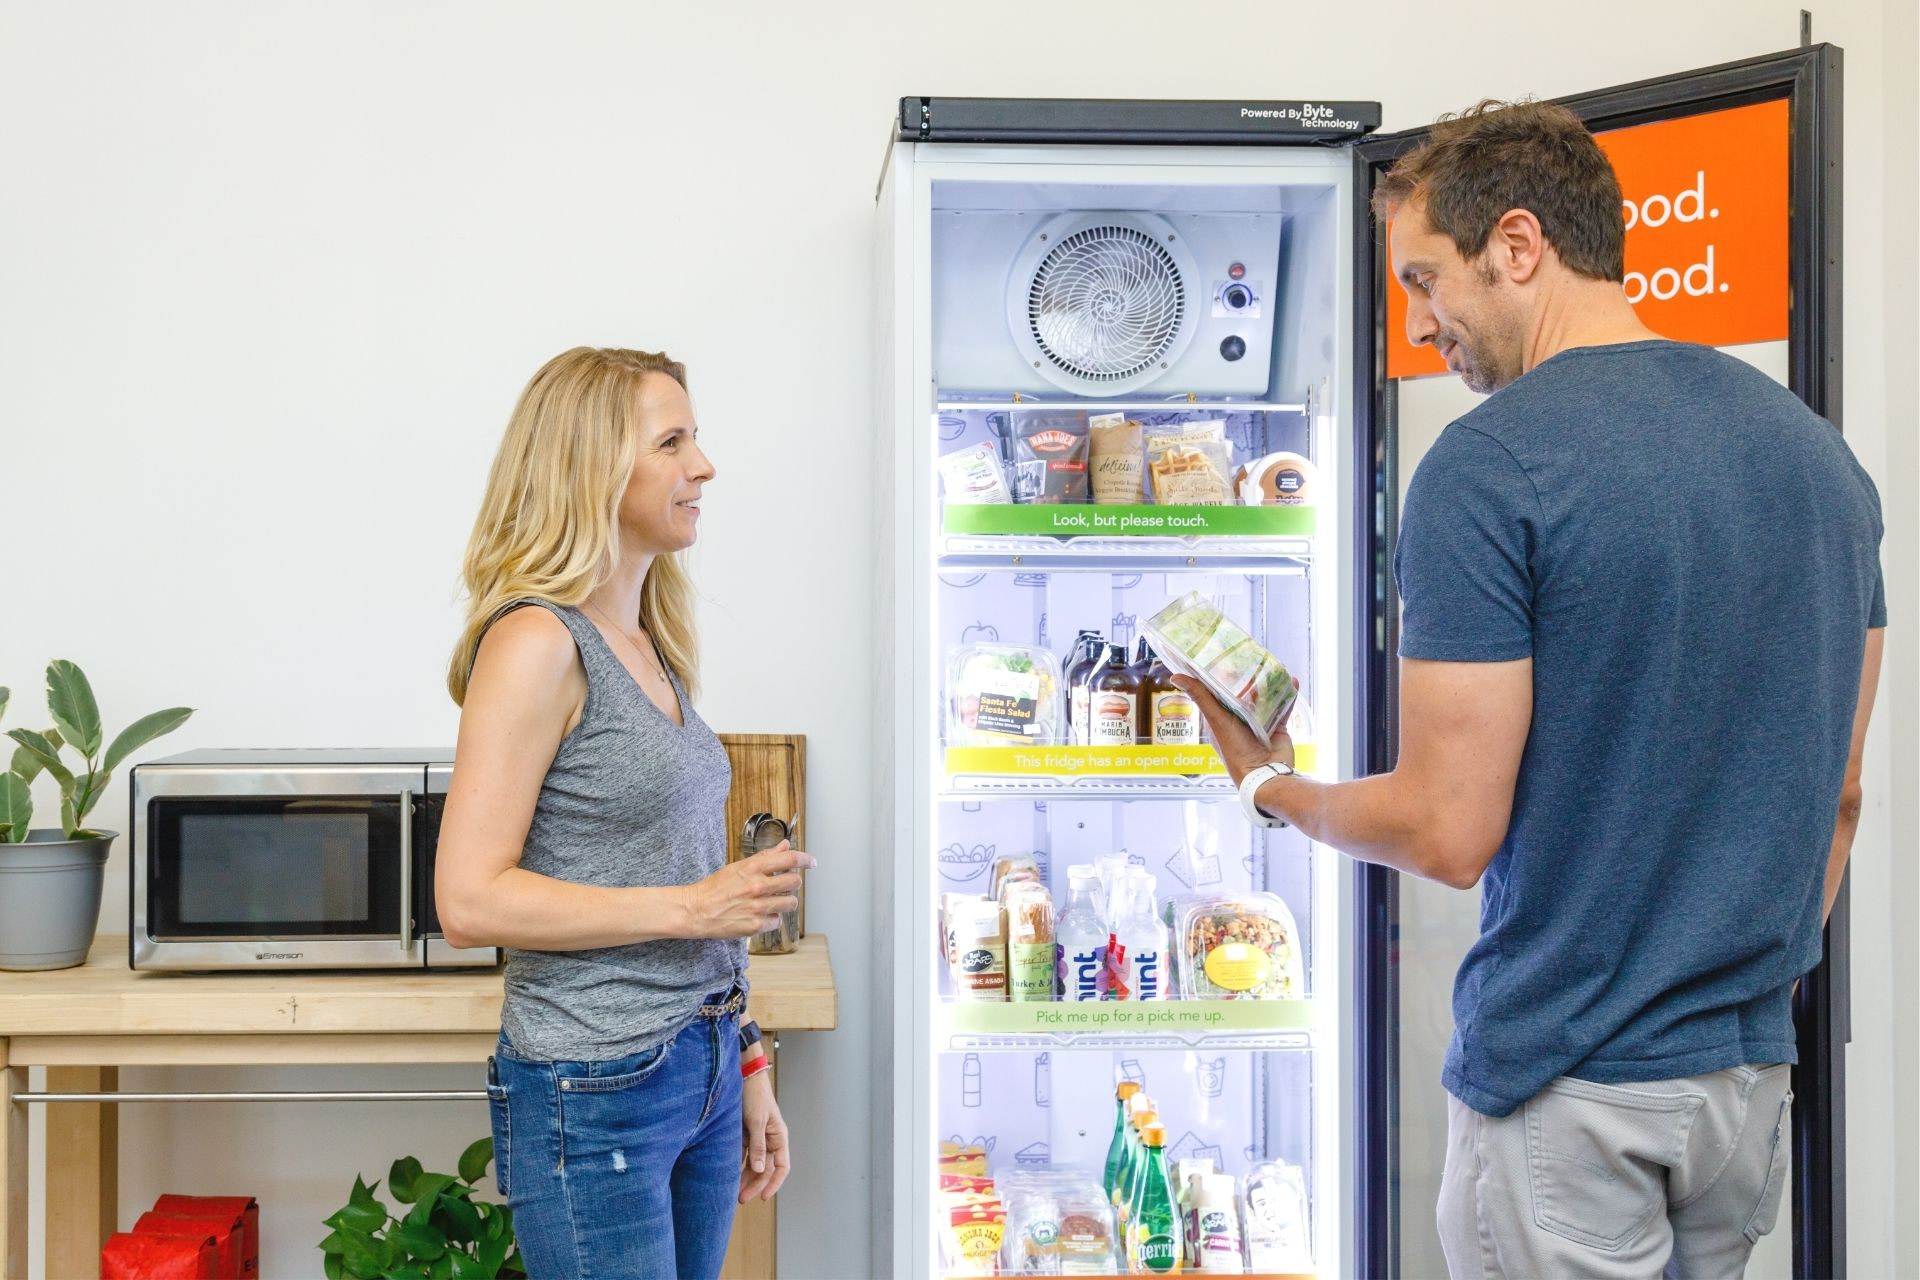 delight customers with fresh food vending